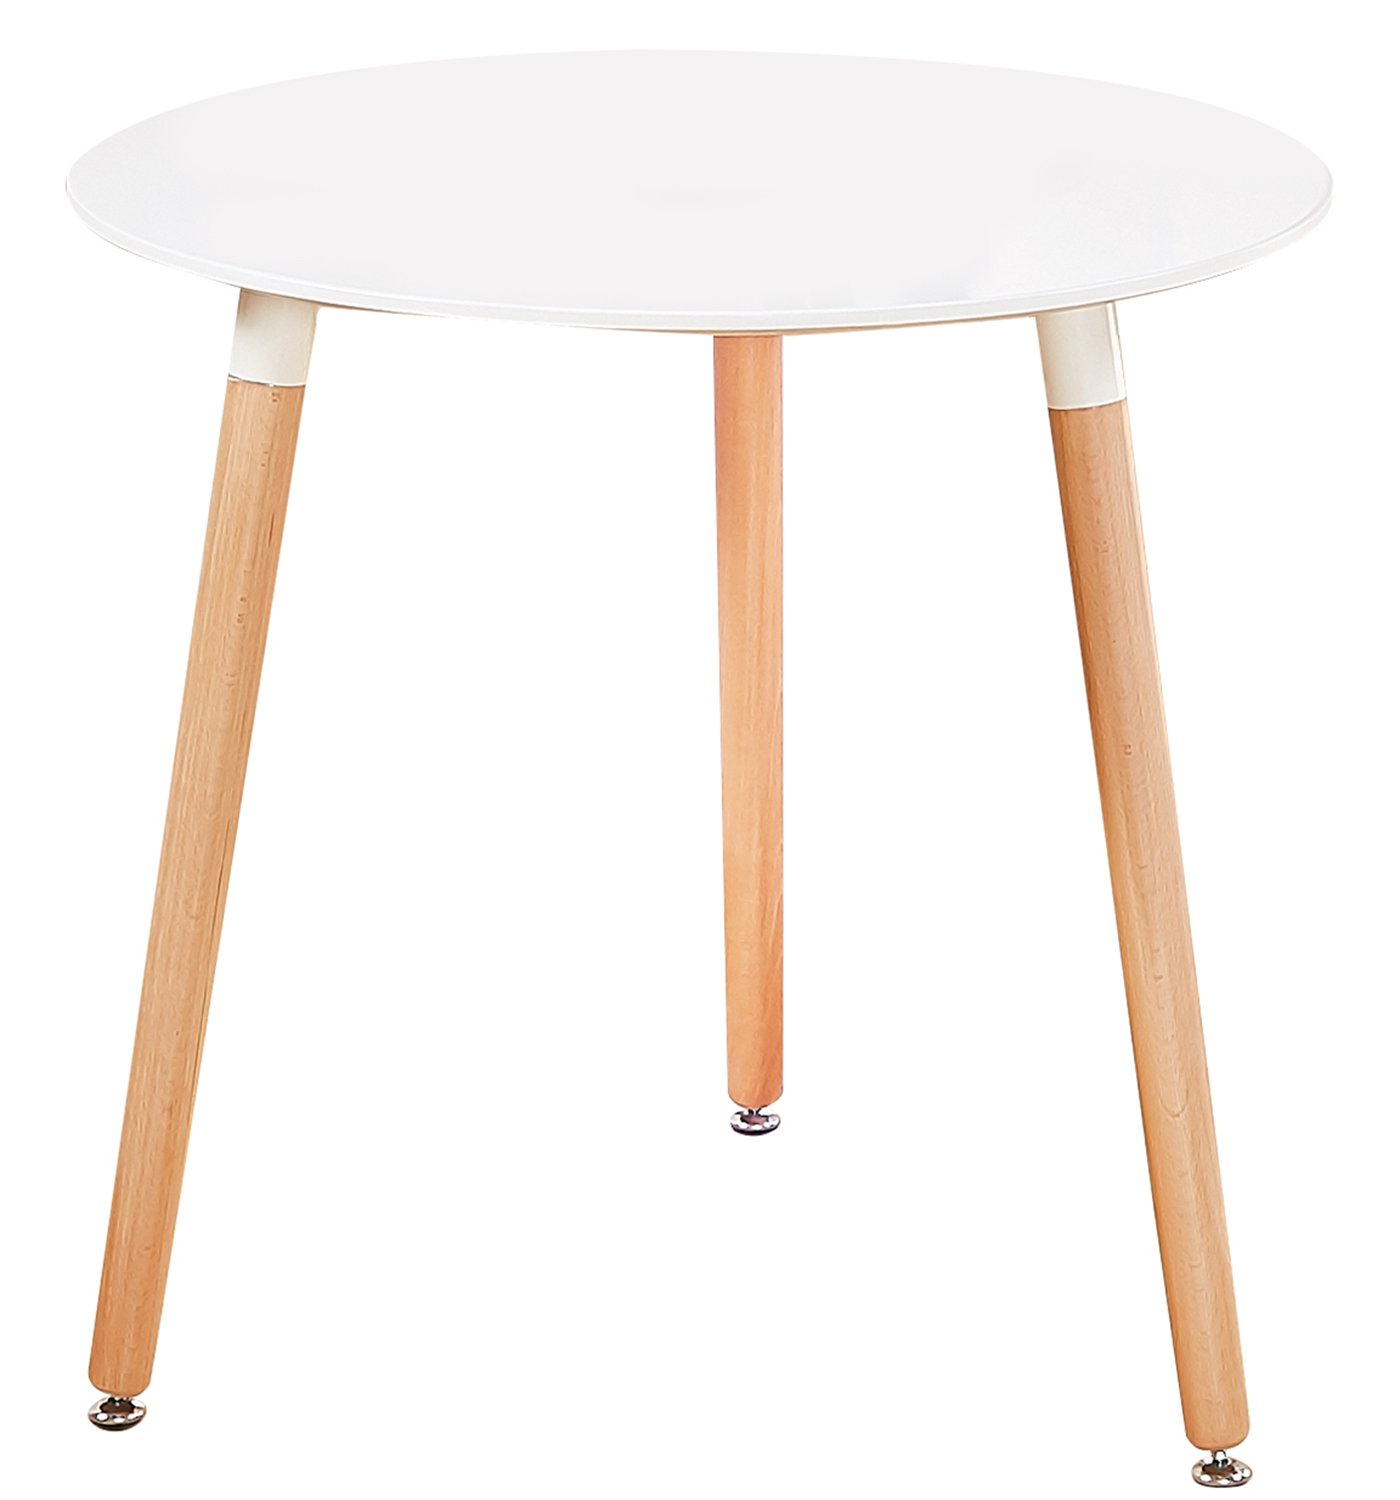 e078323a9ec6 Get Quotations · Green Forest Dining Table Modern Round Table White Coffee  Table for Kitchen Dining Room Leisure Table